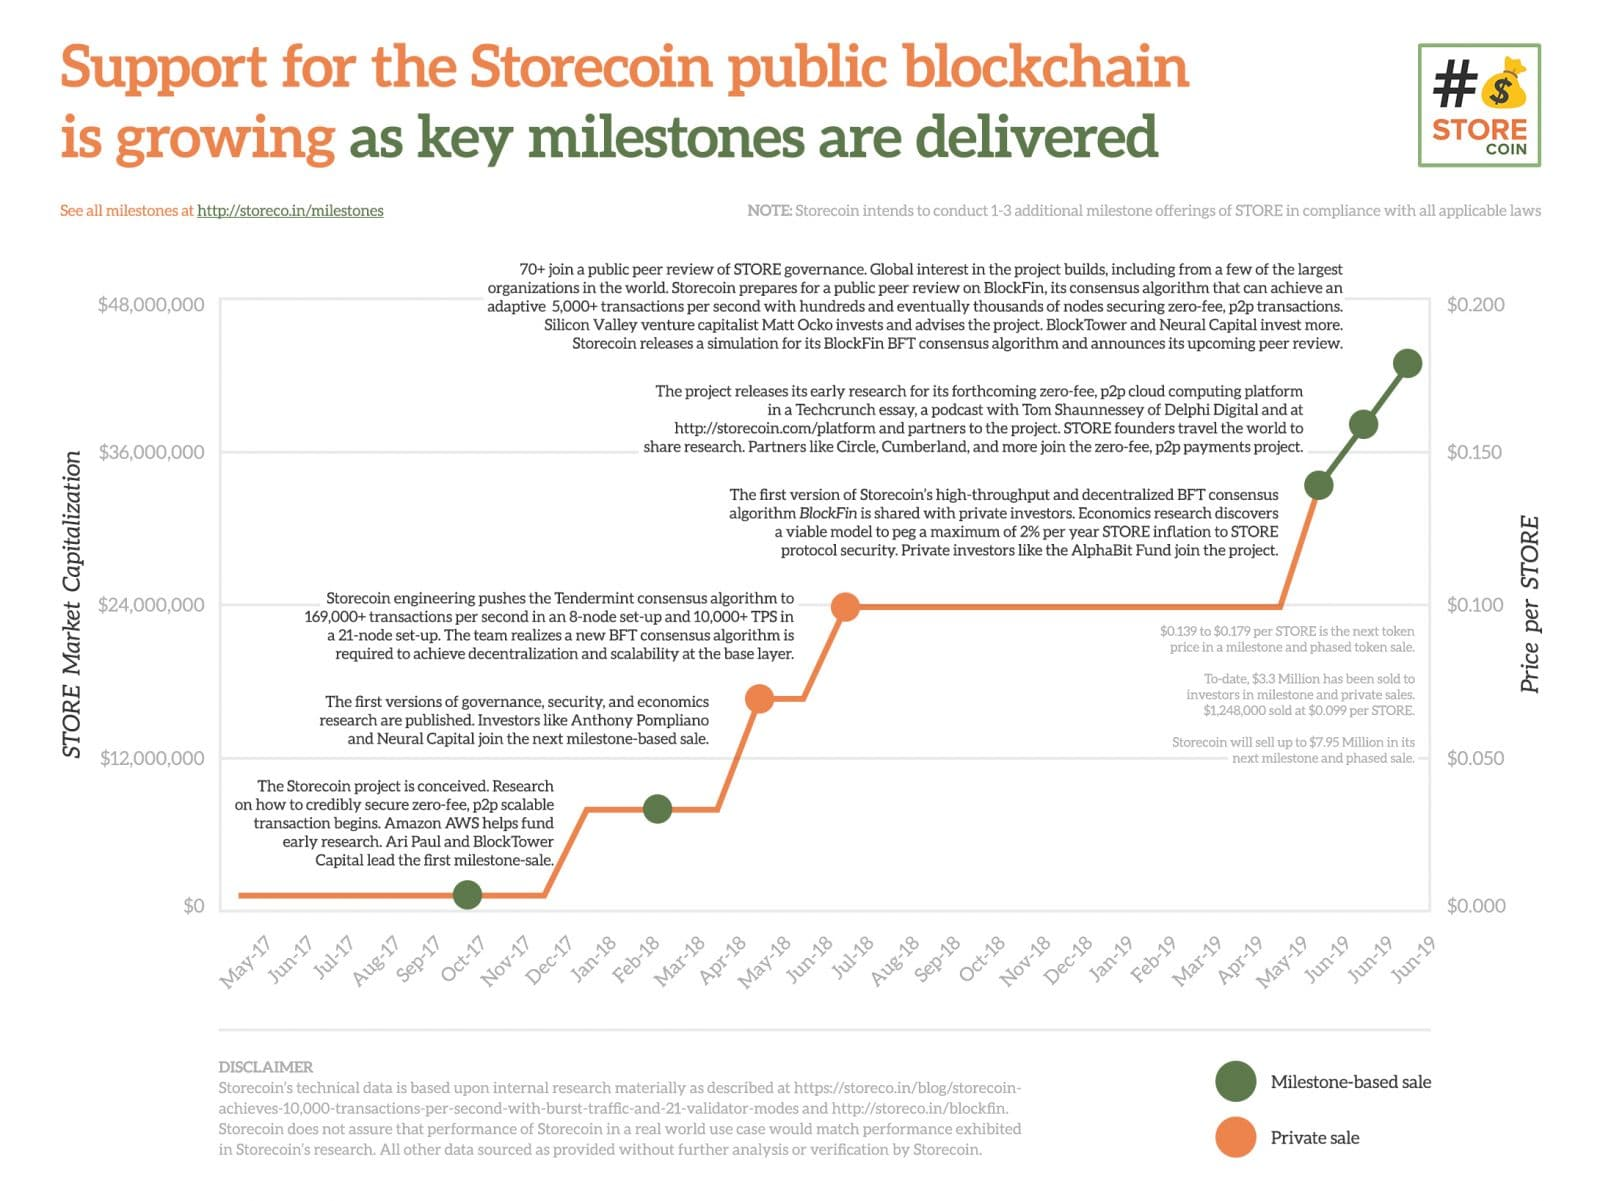 Storecoin Brings Tokenized Data to the Masses, Announces Latest Milestone-Based Token Offering